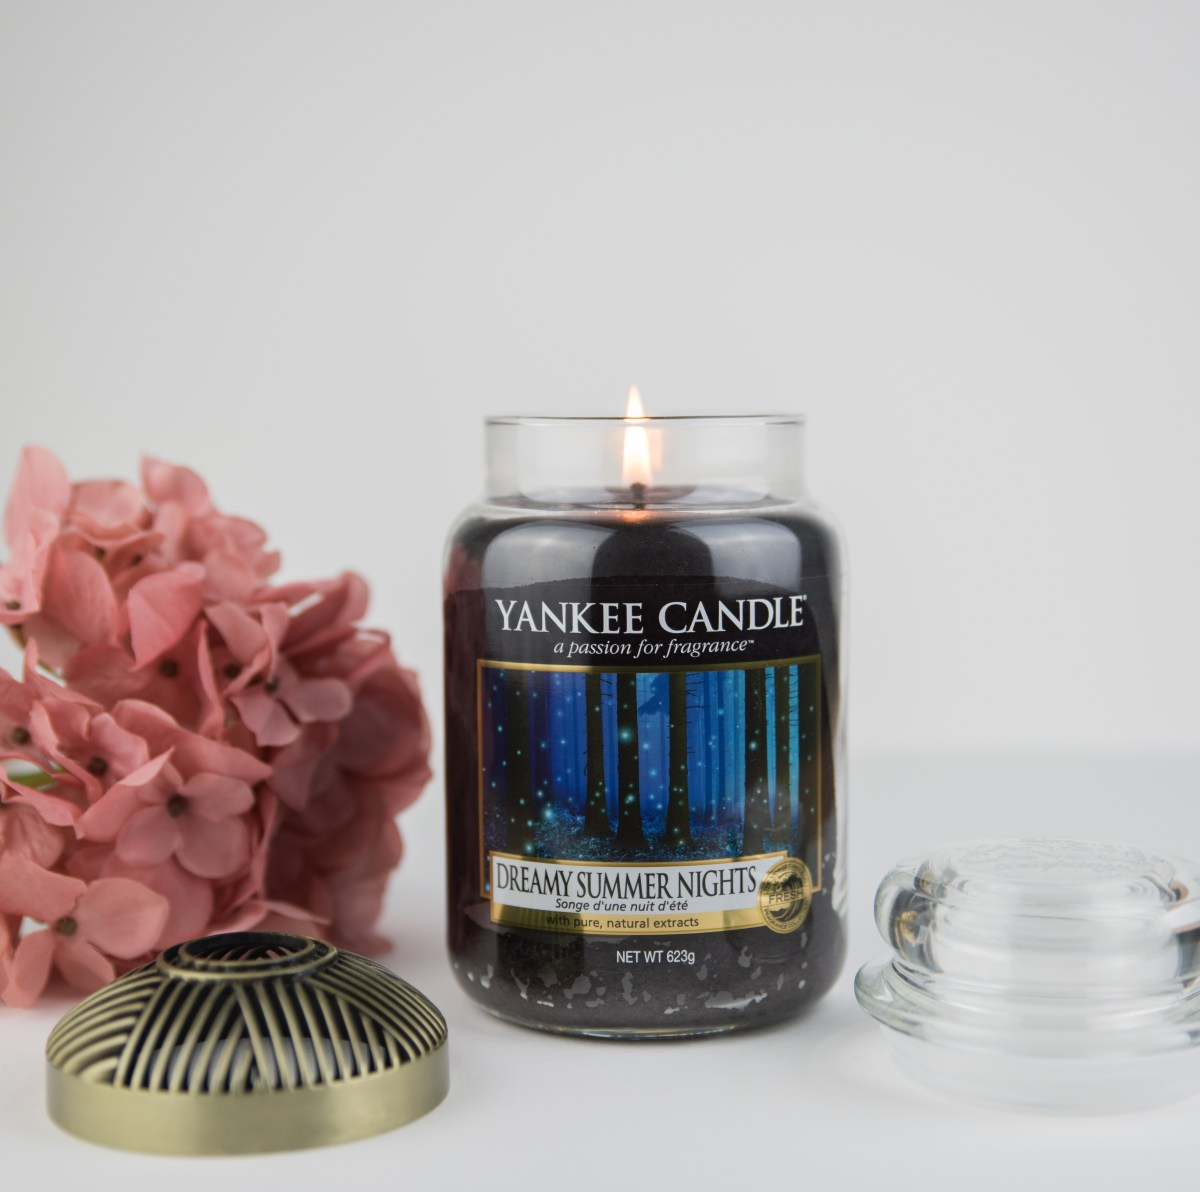 Yankee Candle – Dreamy Summer Nights